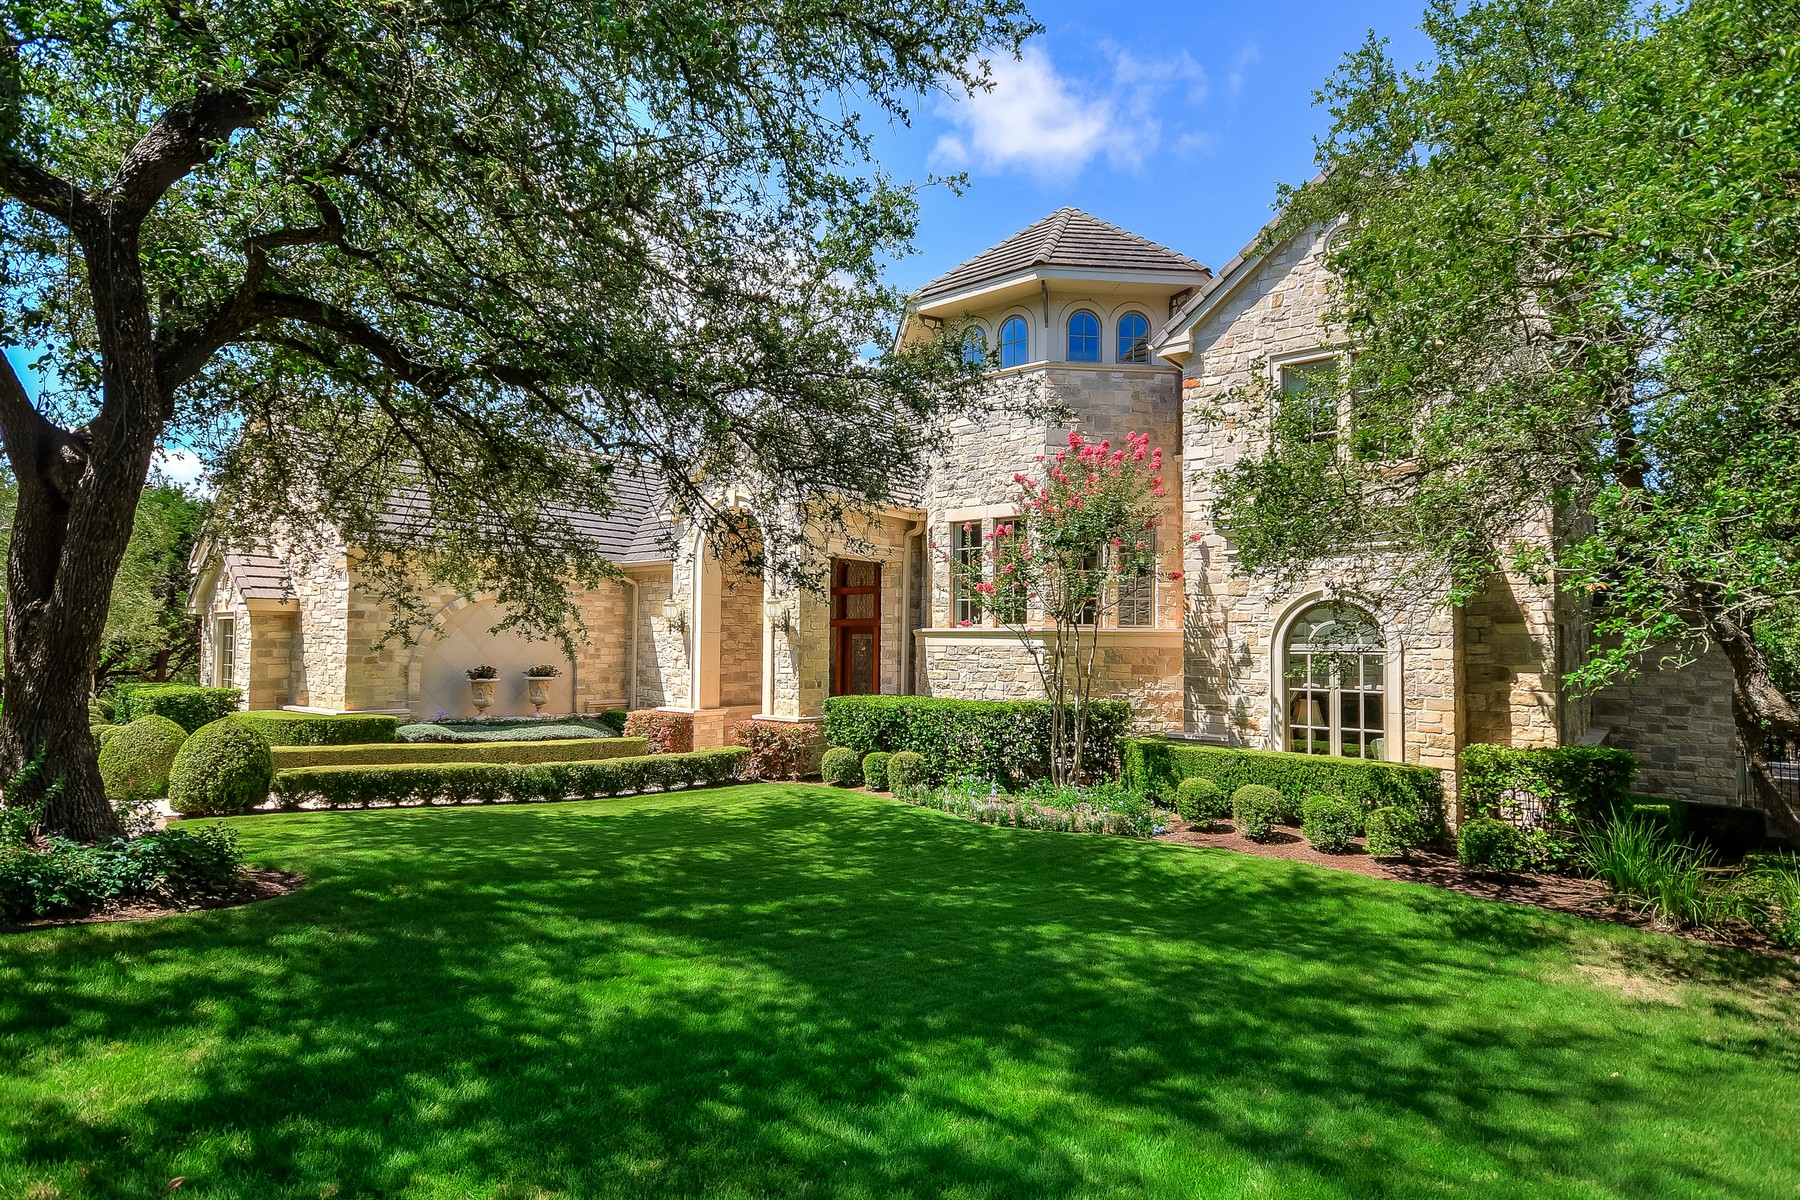 Vivienda unifamiliar por un Venta en Outstanding Barton Creek Estate Home 8409 Chalk Knoll Dr, Austin, Texas, 78735 Estados Unidos